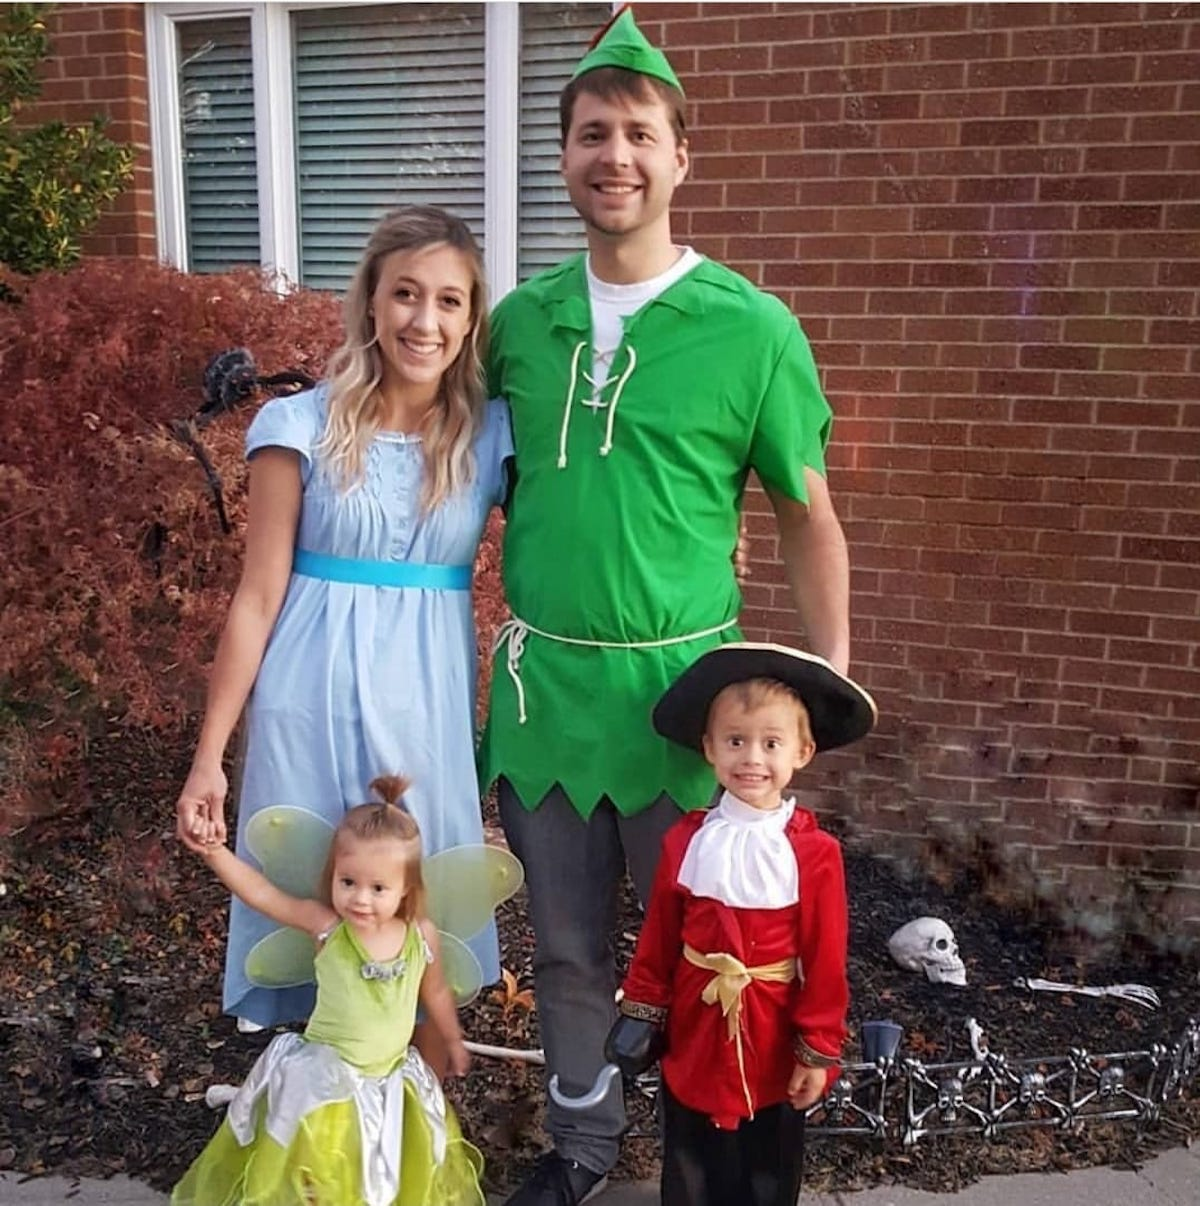 Family wearing Peter Pan character costumes smiles in front of red brick house.